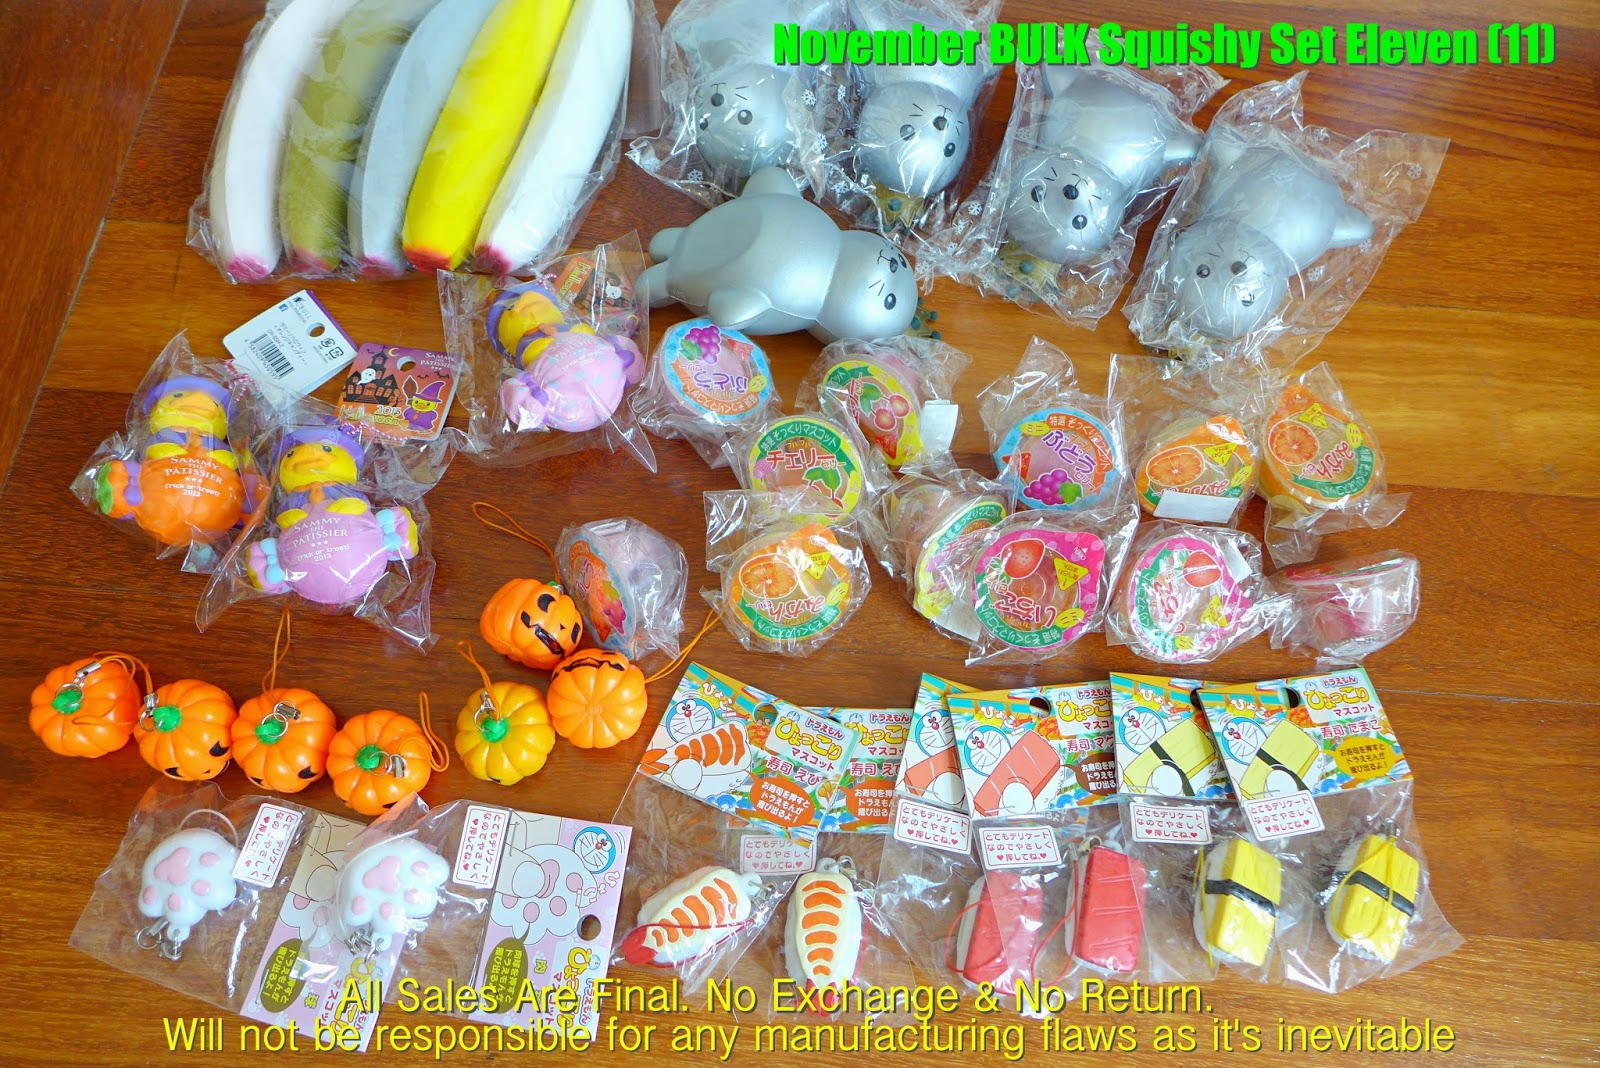 Squishy Toys At Toys R Us : Sue s Cutie Closet : Squishy Update: Squishy Set & BULK Set (Ibloom, Doraemon Squeeze Toy, Jelly ...